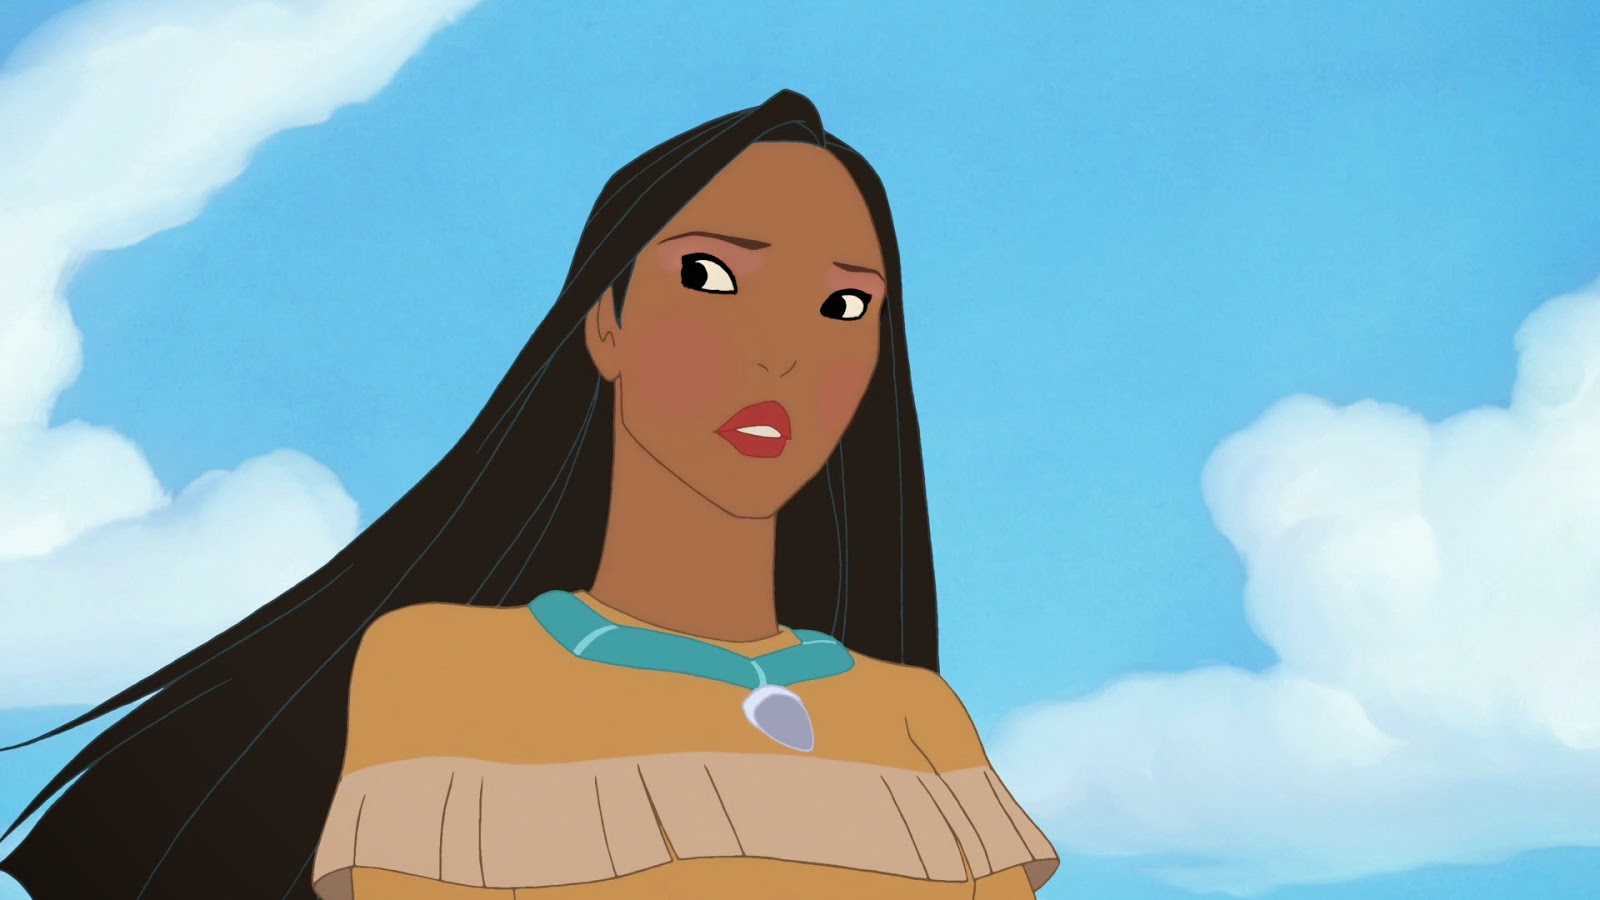 Disney princess pocahontas naked